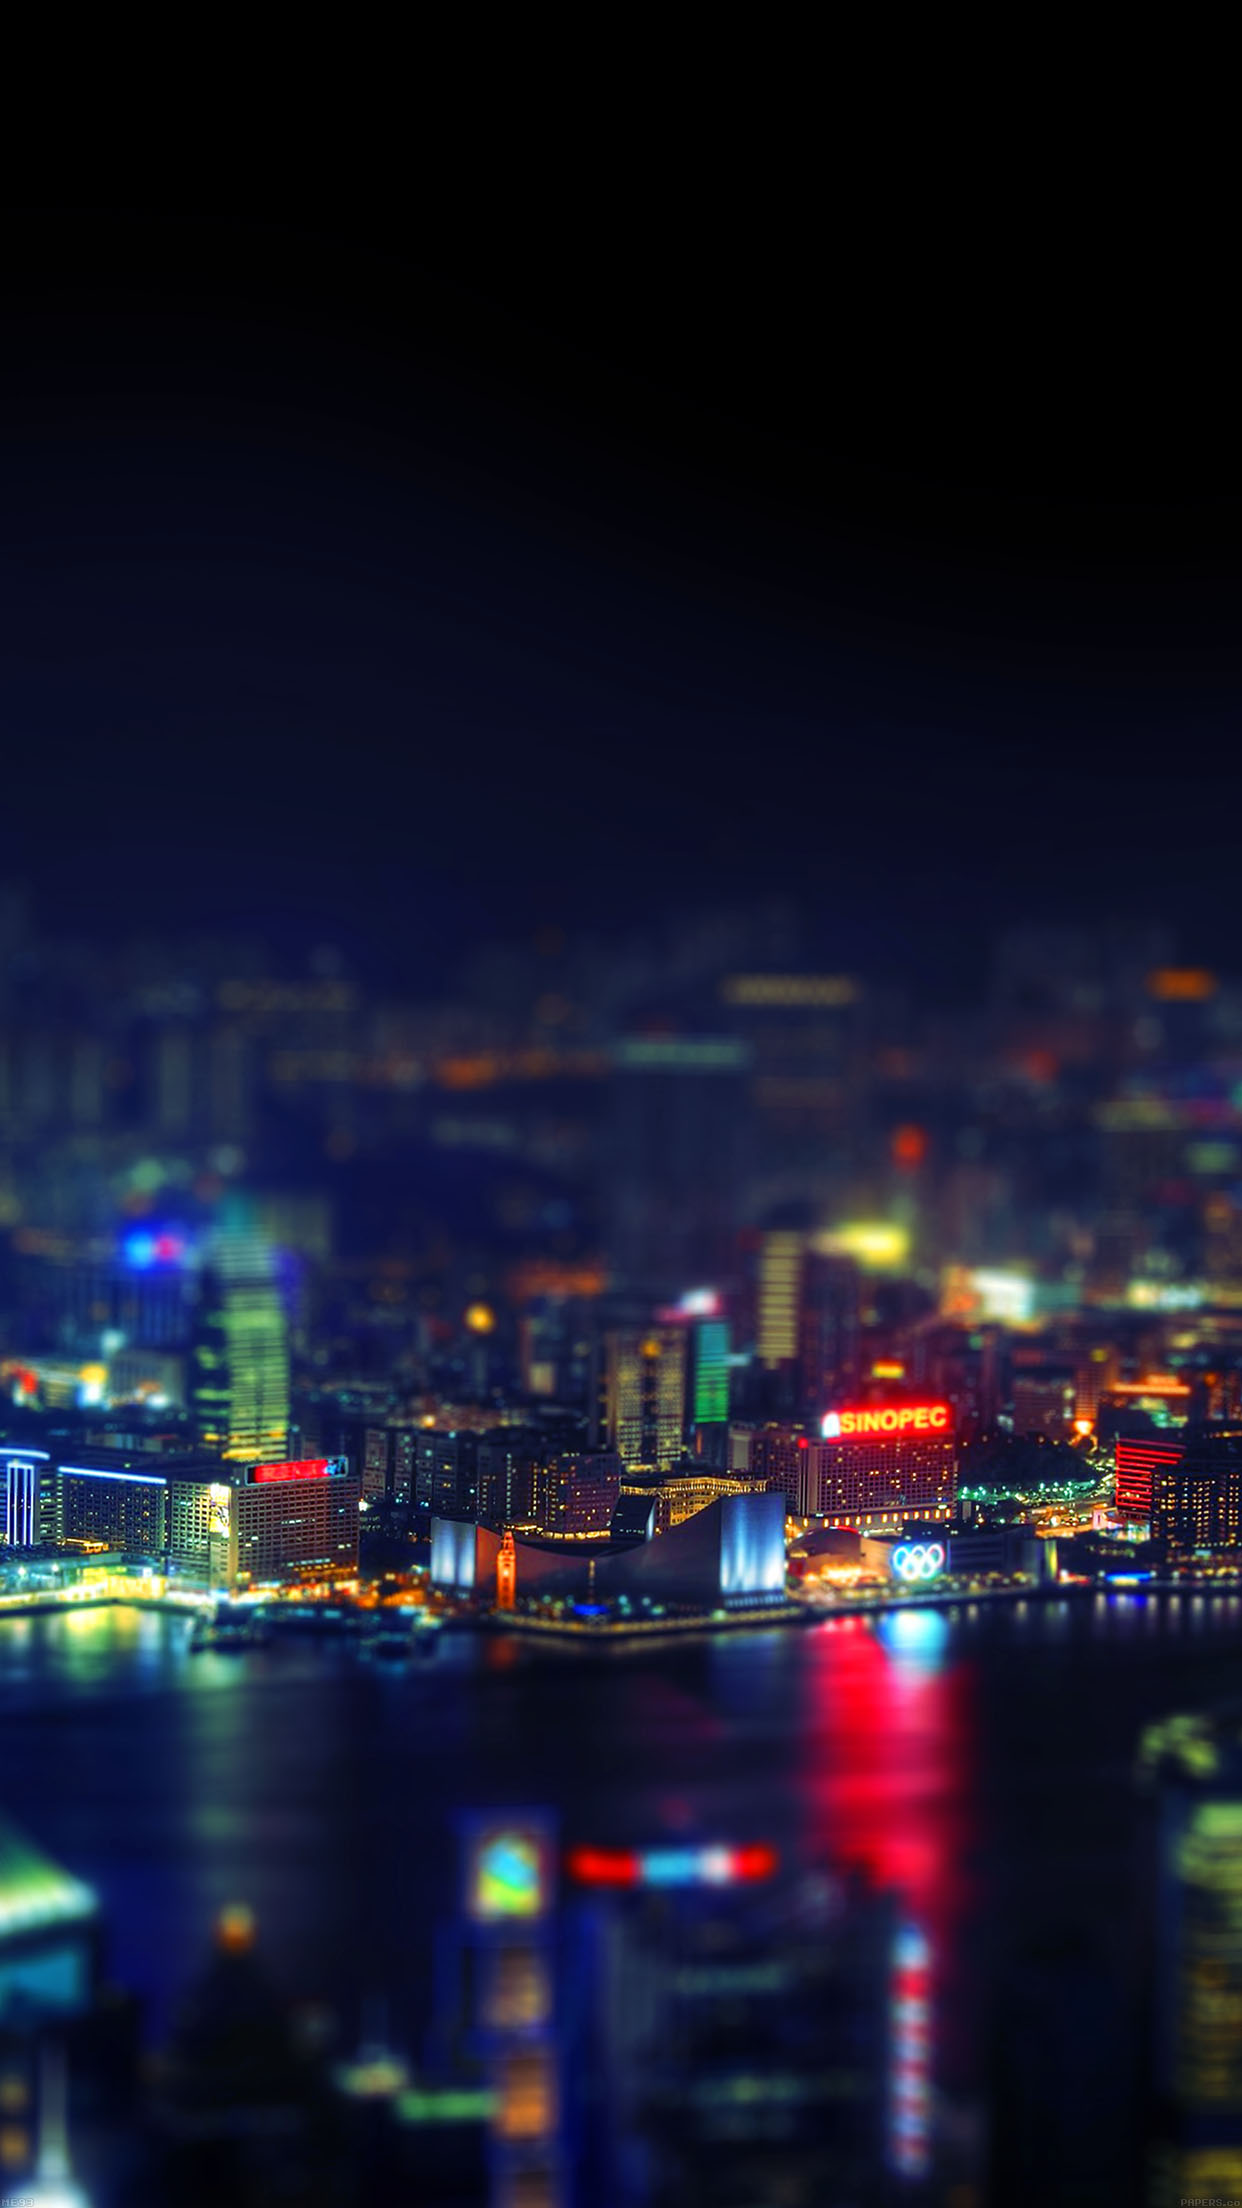 Cute Butterfly Phone Wallpaper Me93 Hongkong Night Cityscapes Lights Papers Co